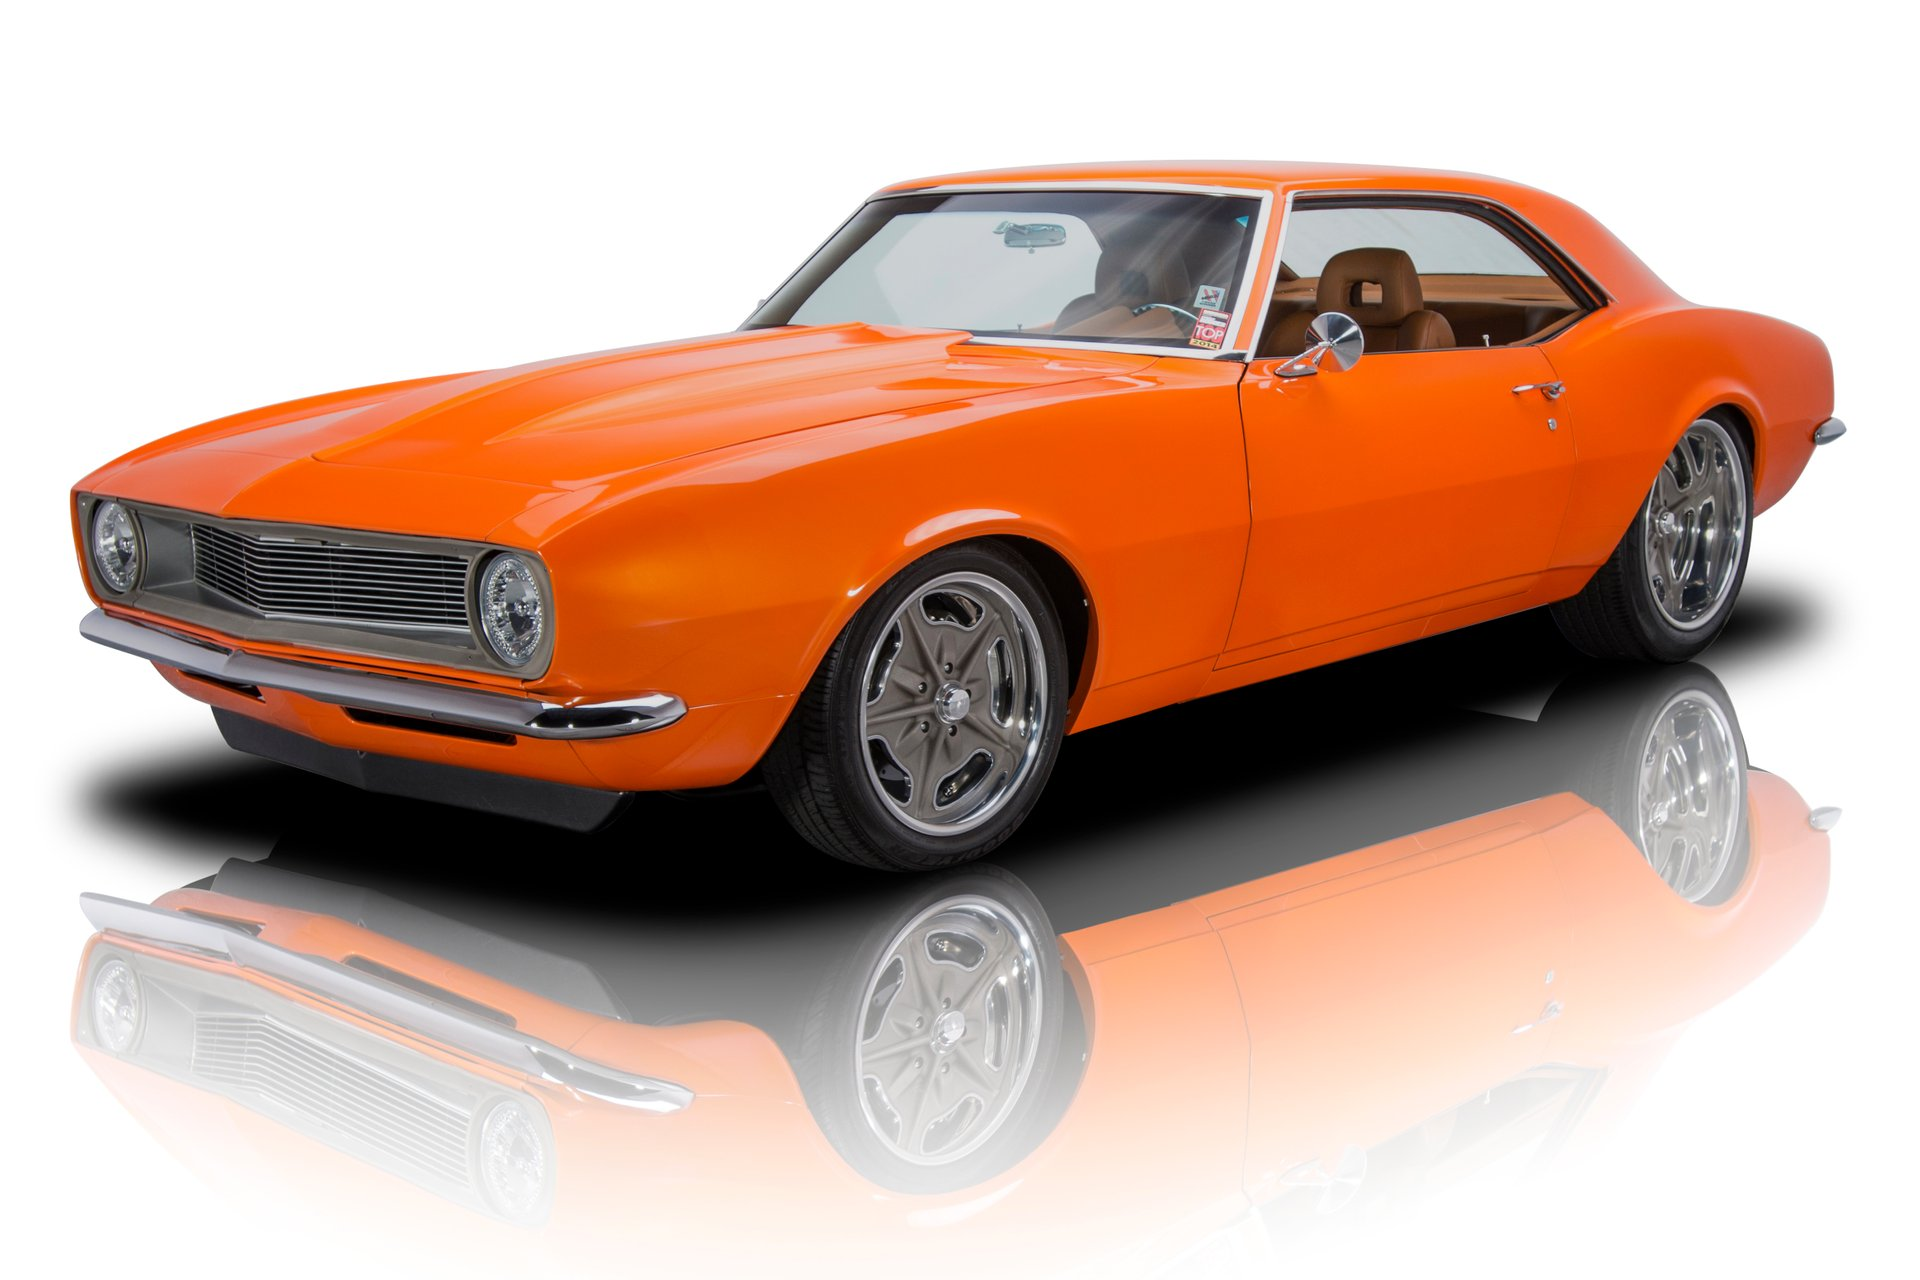 1968 Chevrolet Camaro RK Motors Classic Cars for Sale